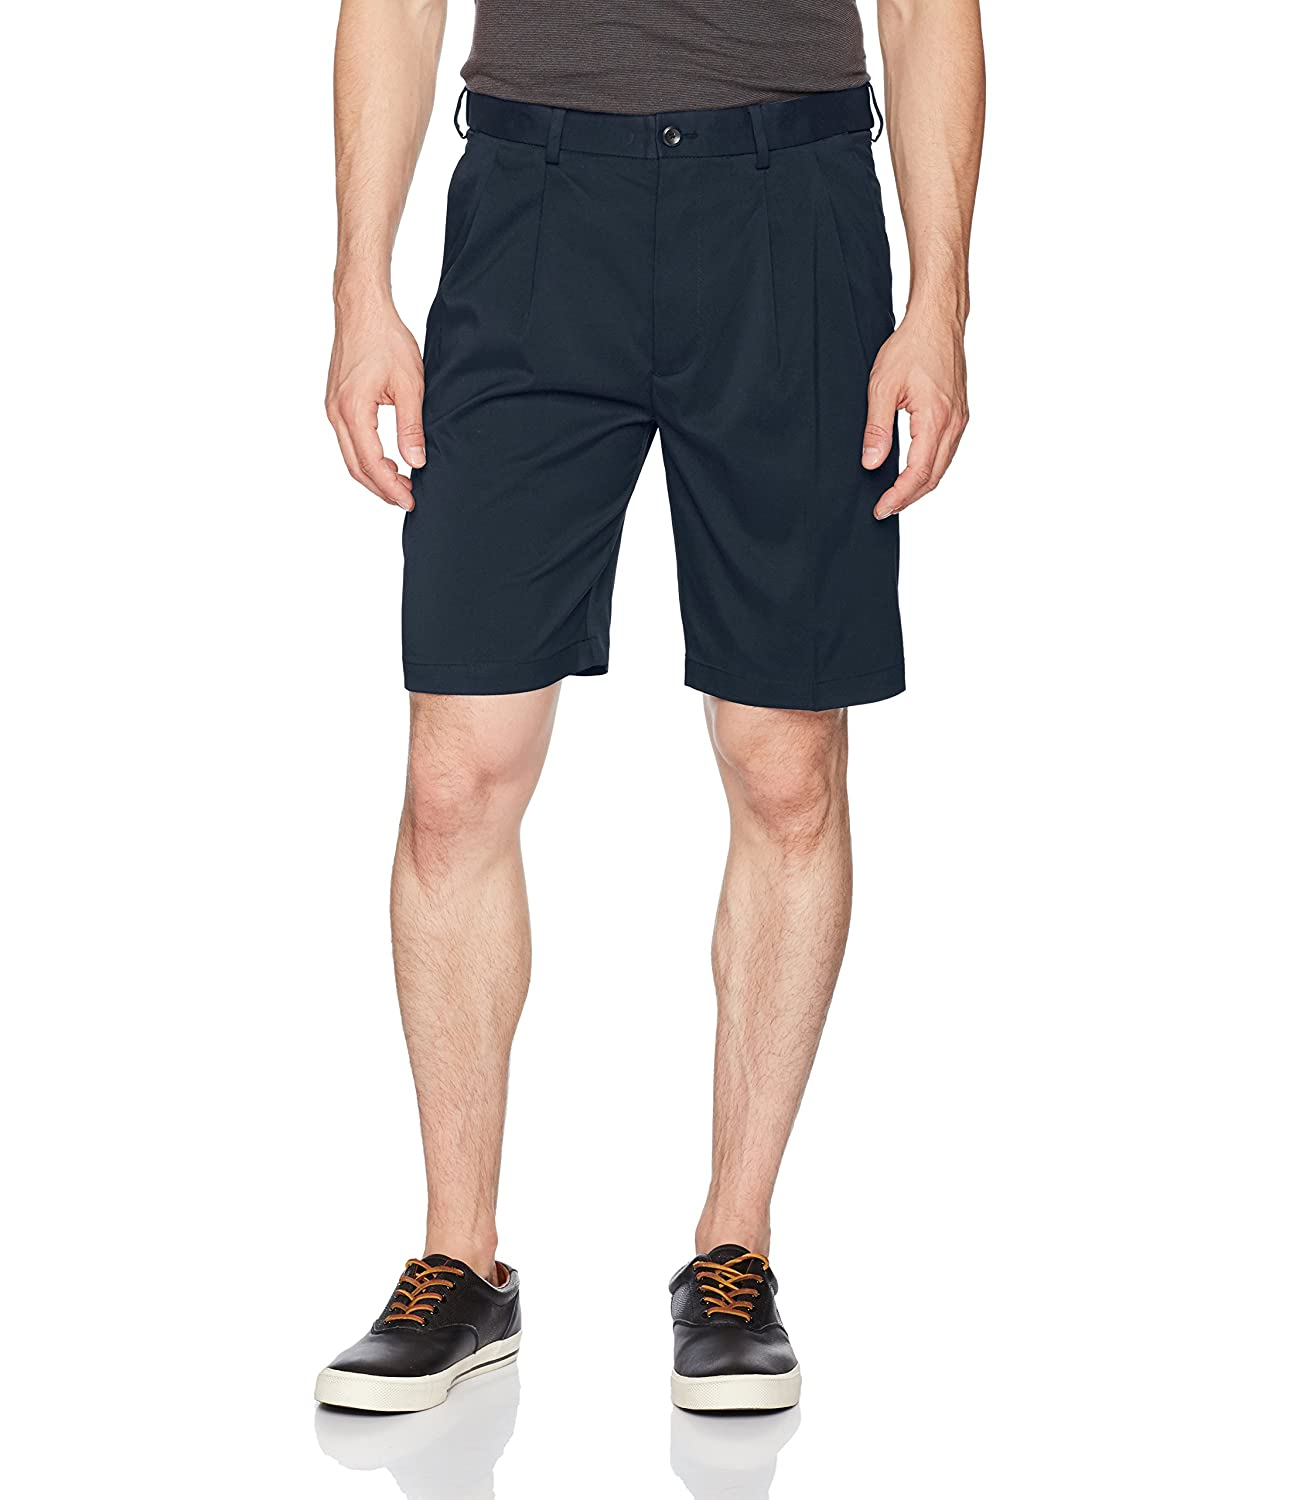 Savane Men's Pleated Mirco Fiber Short Savane Men's Bottoms SWBS7072